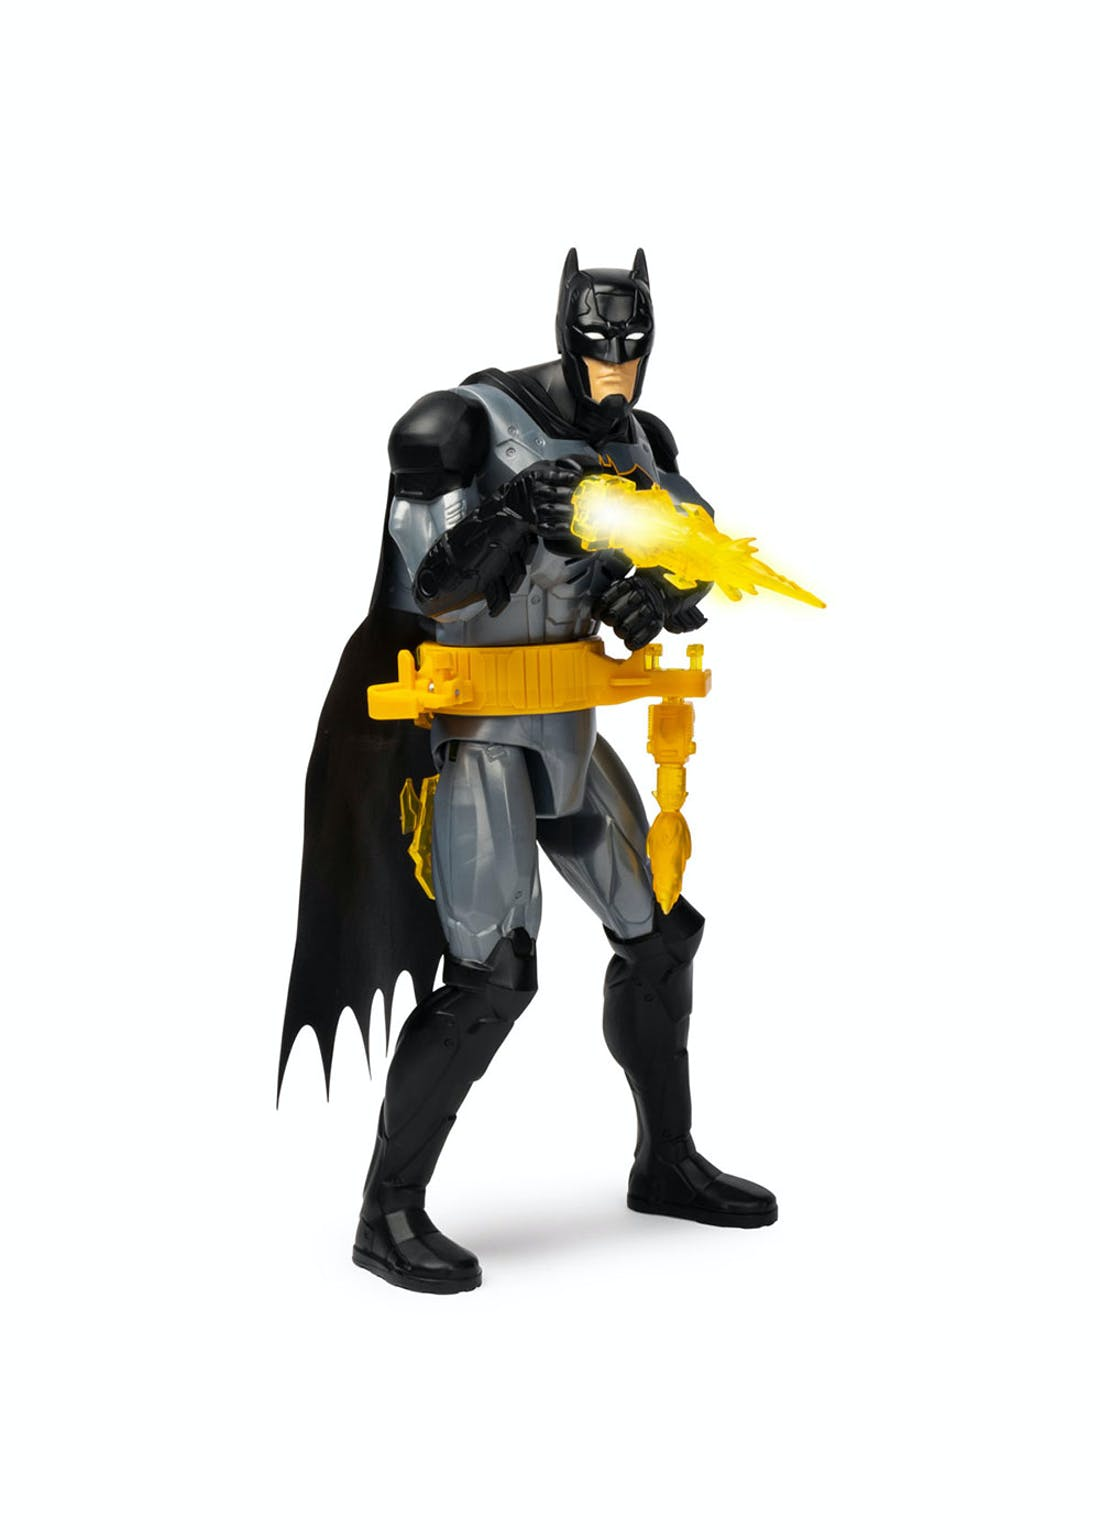 DC Batman Rapid Change Figure & Utility Belt (33cm x 27cm x 11.5cm)